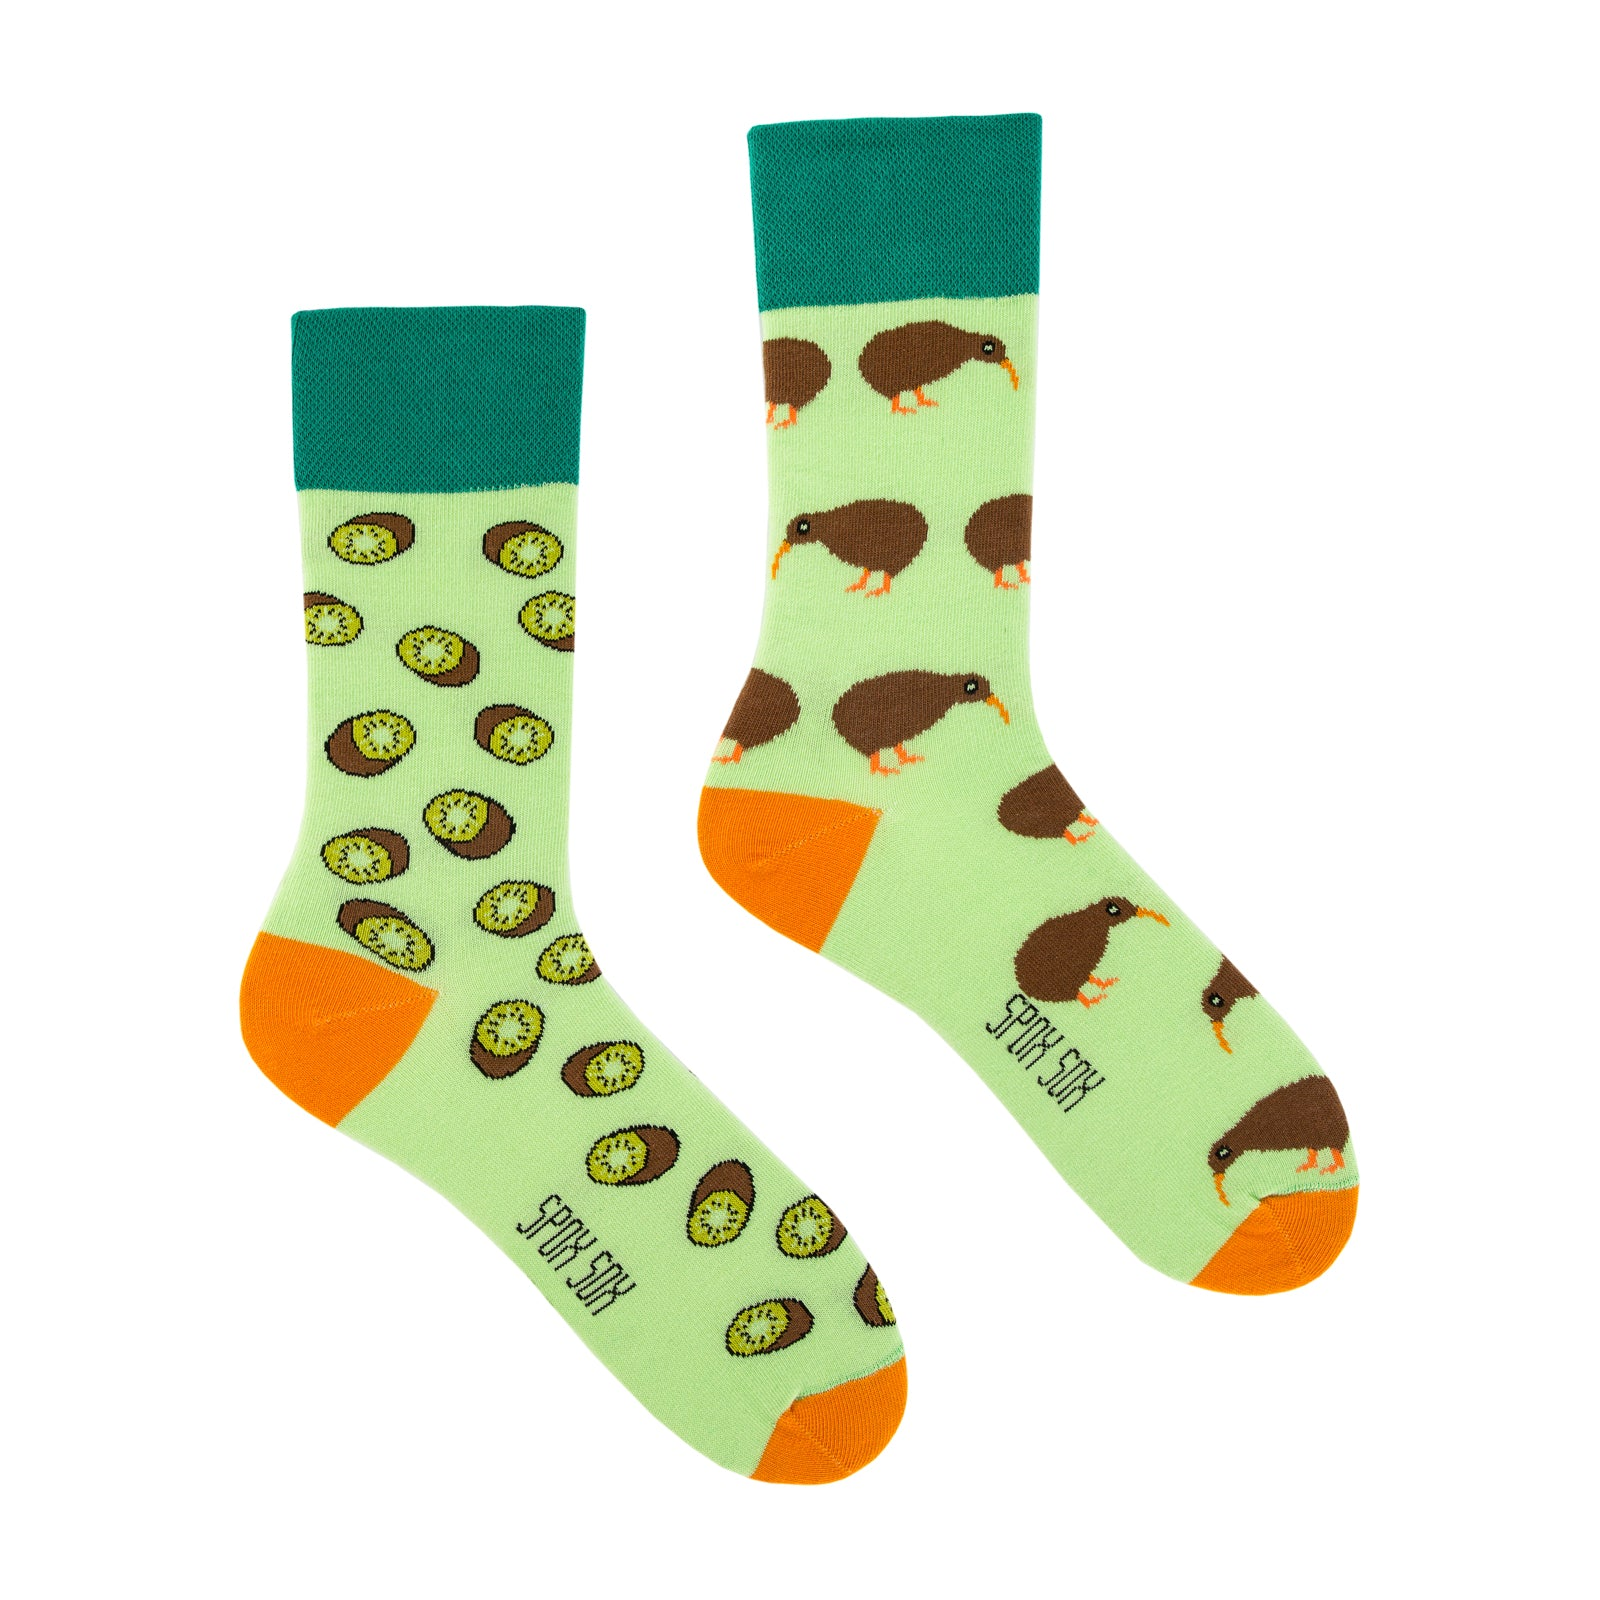 Kiwi | Colourful Mismatched Funny Socks | King Stone | Canada | SpoxSox | Spox Sox